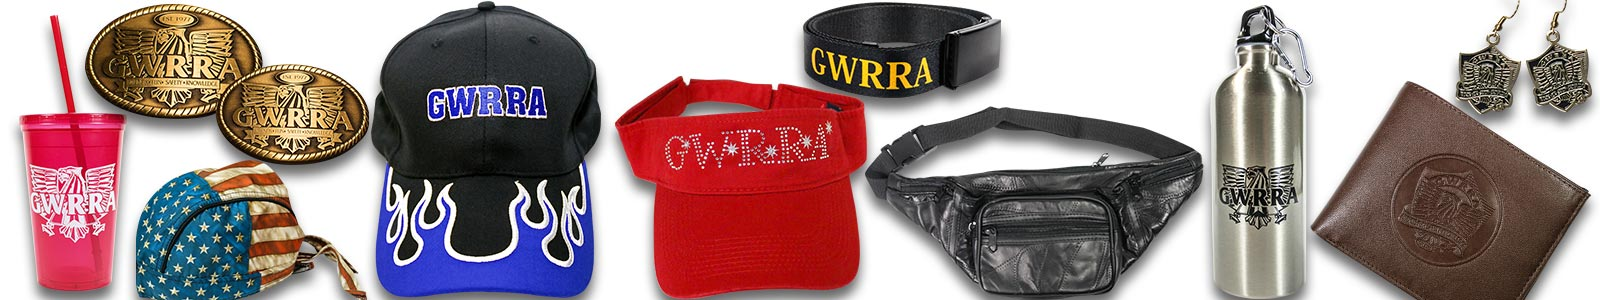 gwrra_storeslider_accessories_1600x300